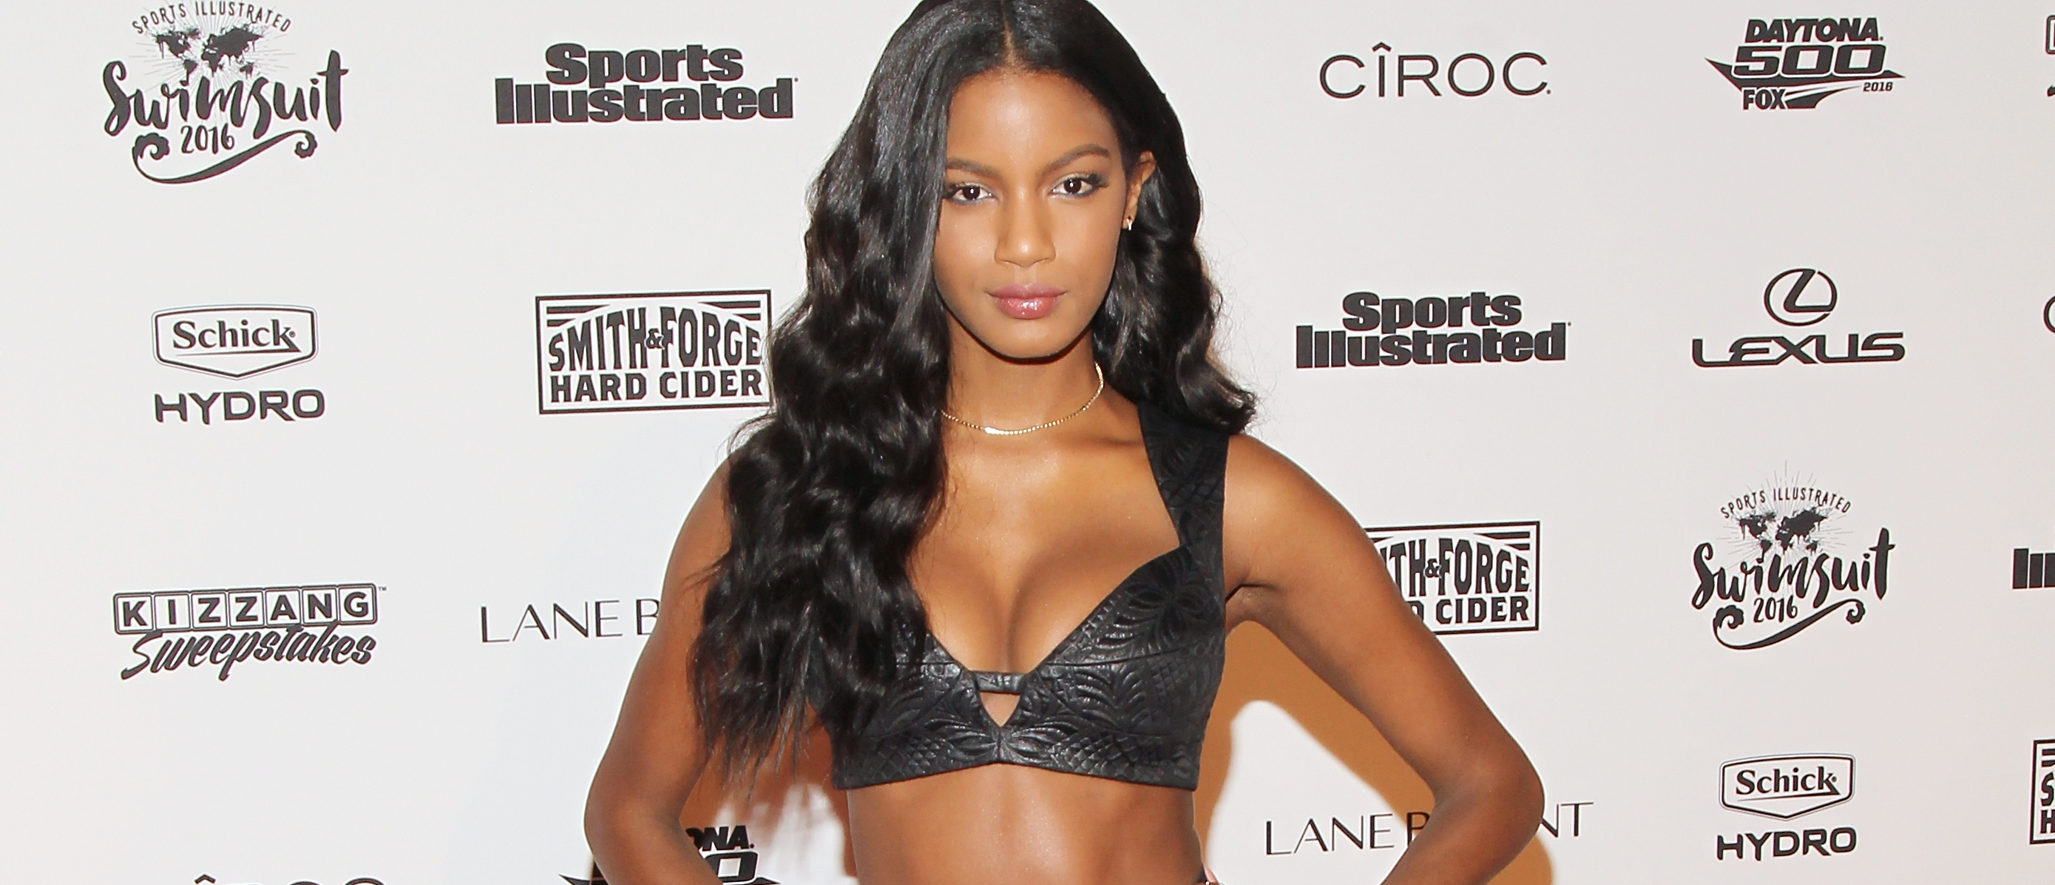 Model Ebonee Davis attends the Sports Illustrated Celebrates Swimsuit 2016 at Brookfield Place on February 16, 2016 in New York City. (Photo by Bennett Raglin/Getty Images)